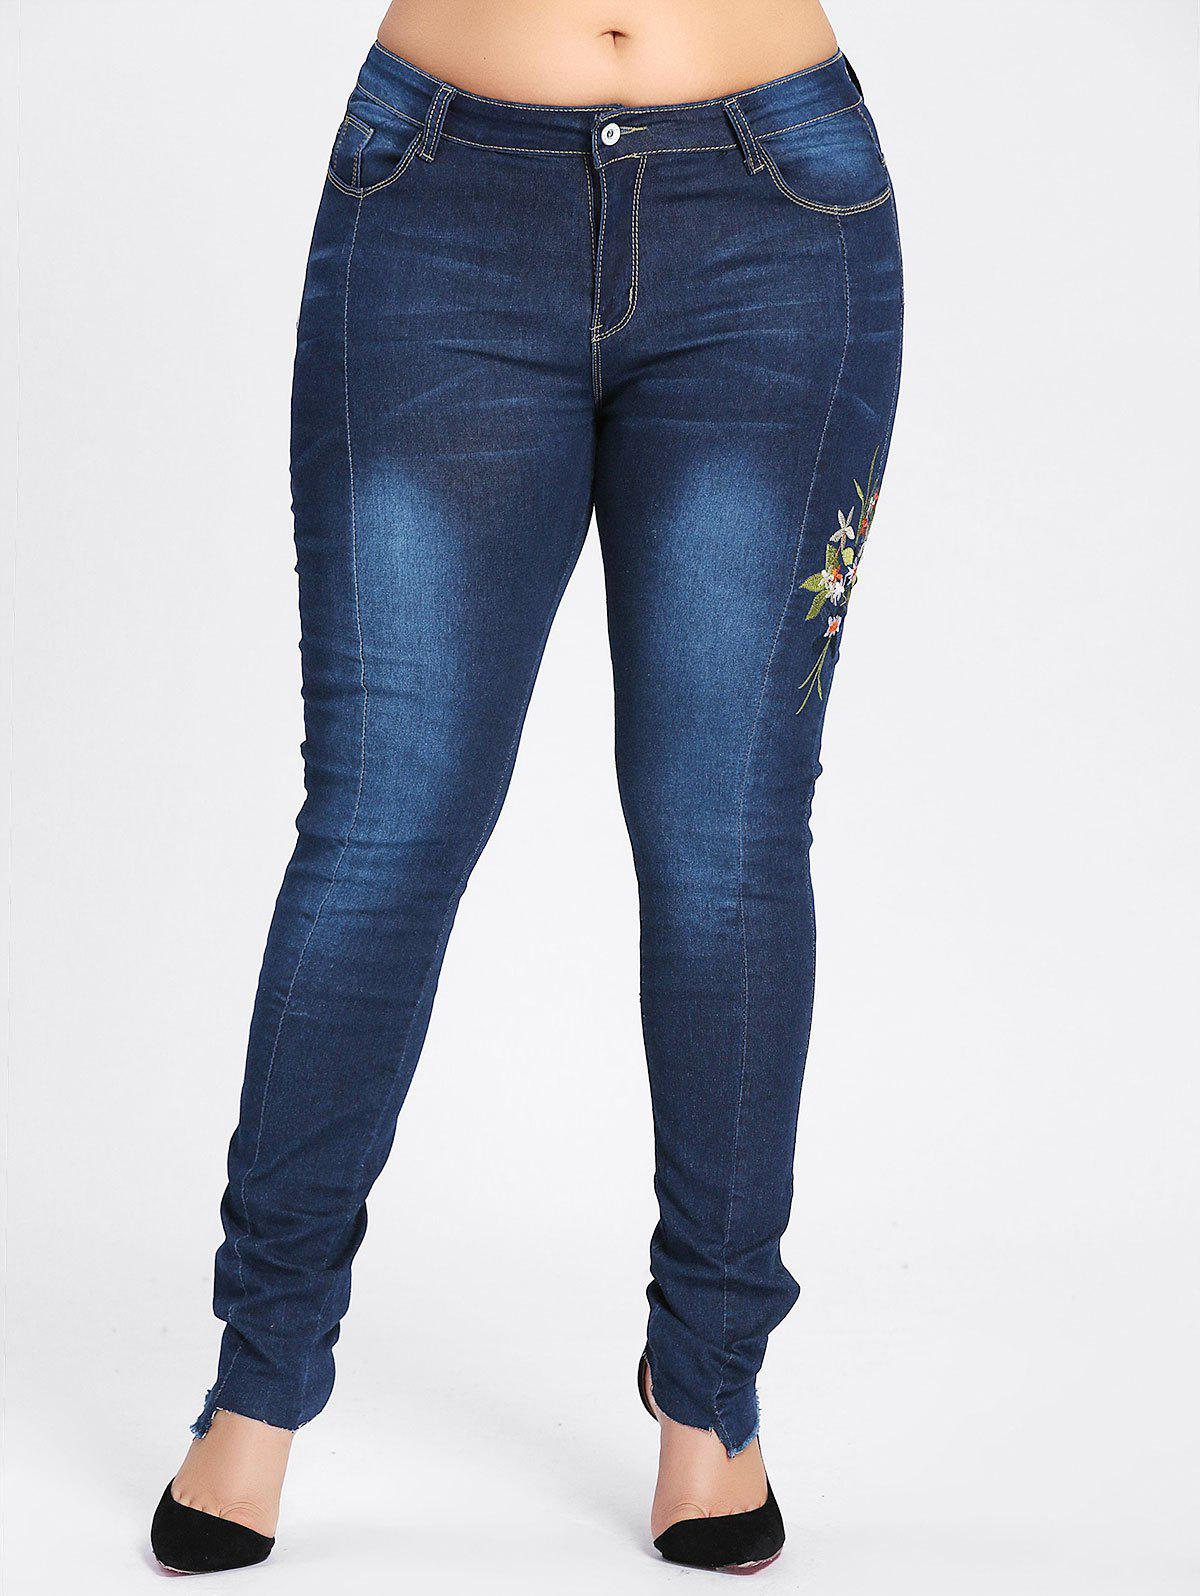 Plus Size Dark Wash Flower Embroidered Jeans - CERULEAN 3XL